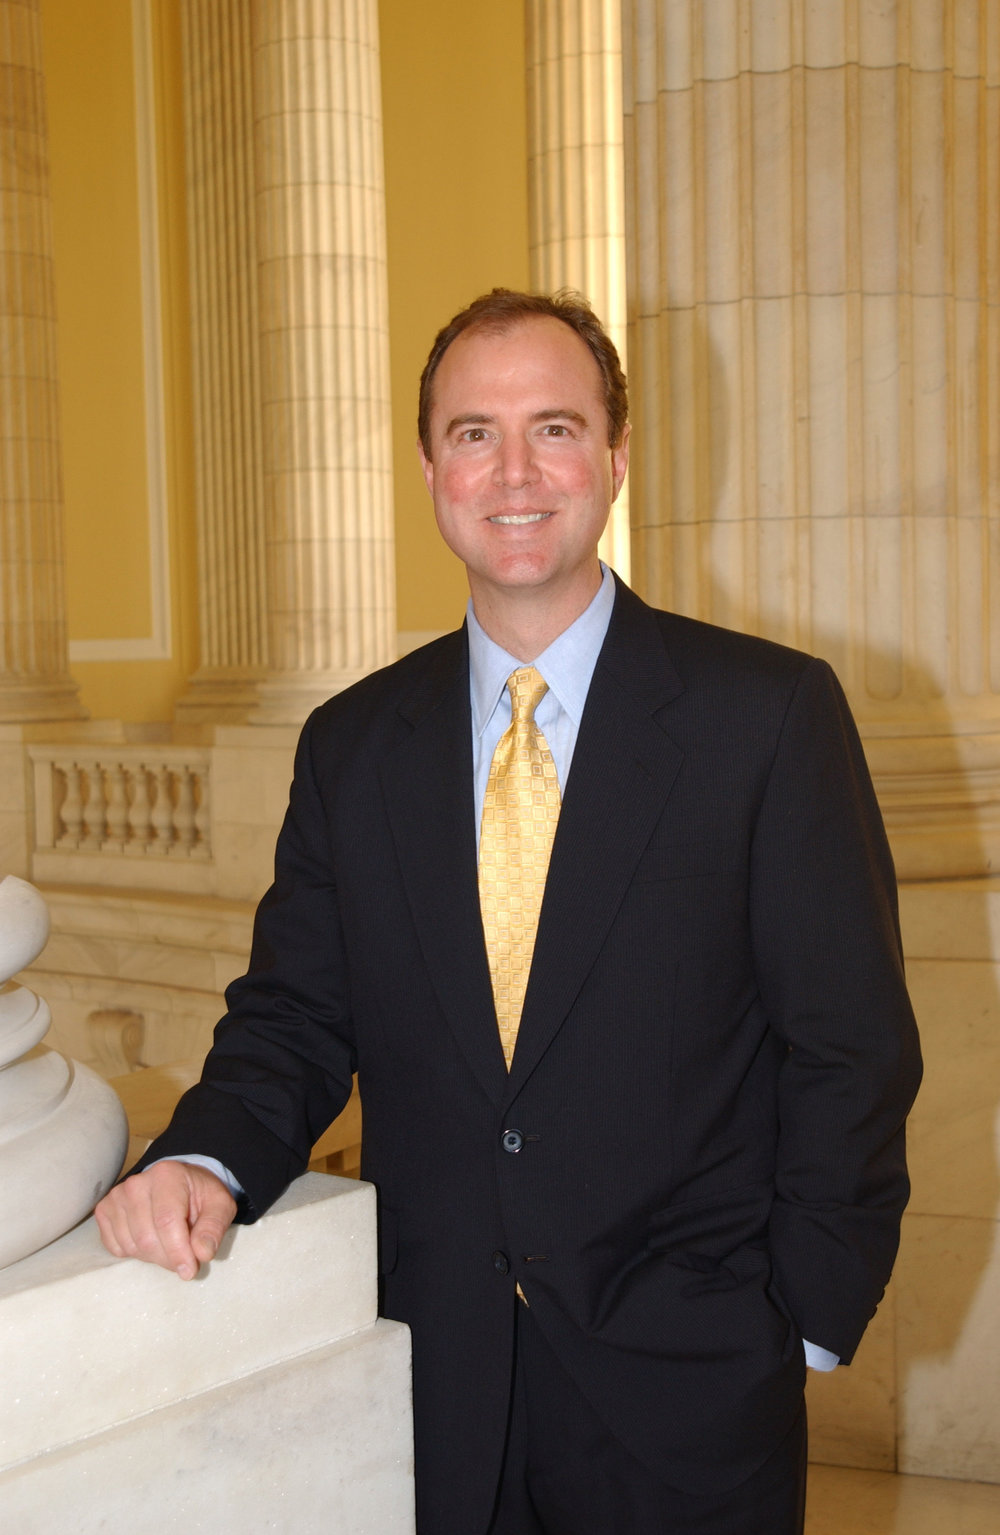 Congressman Adam Schiff  U.S. House of Representatives, CA-28